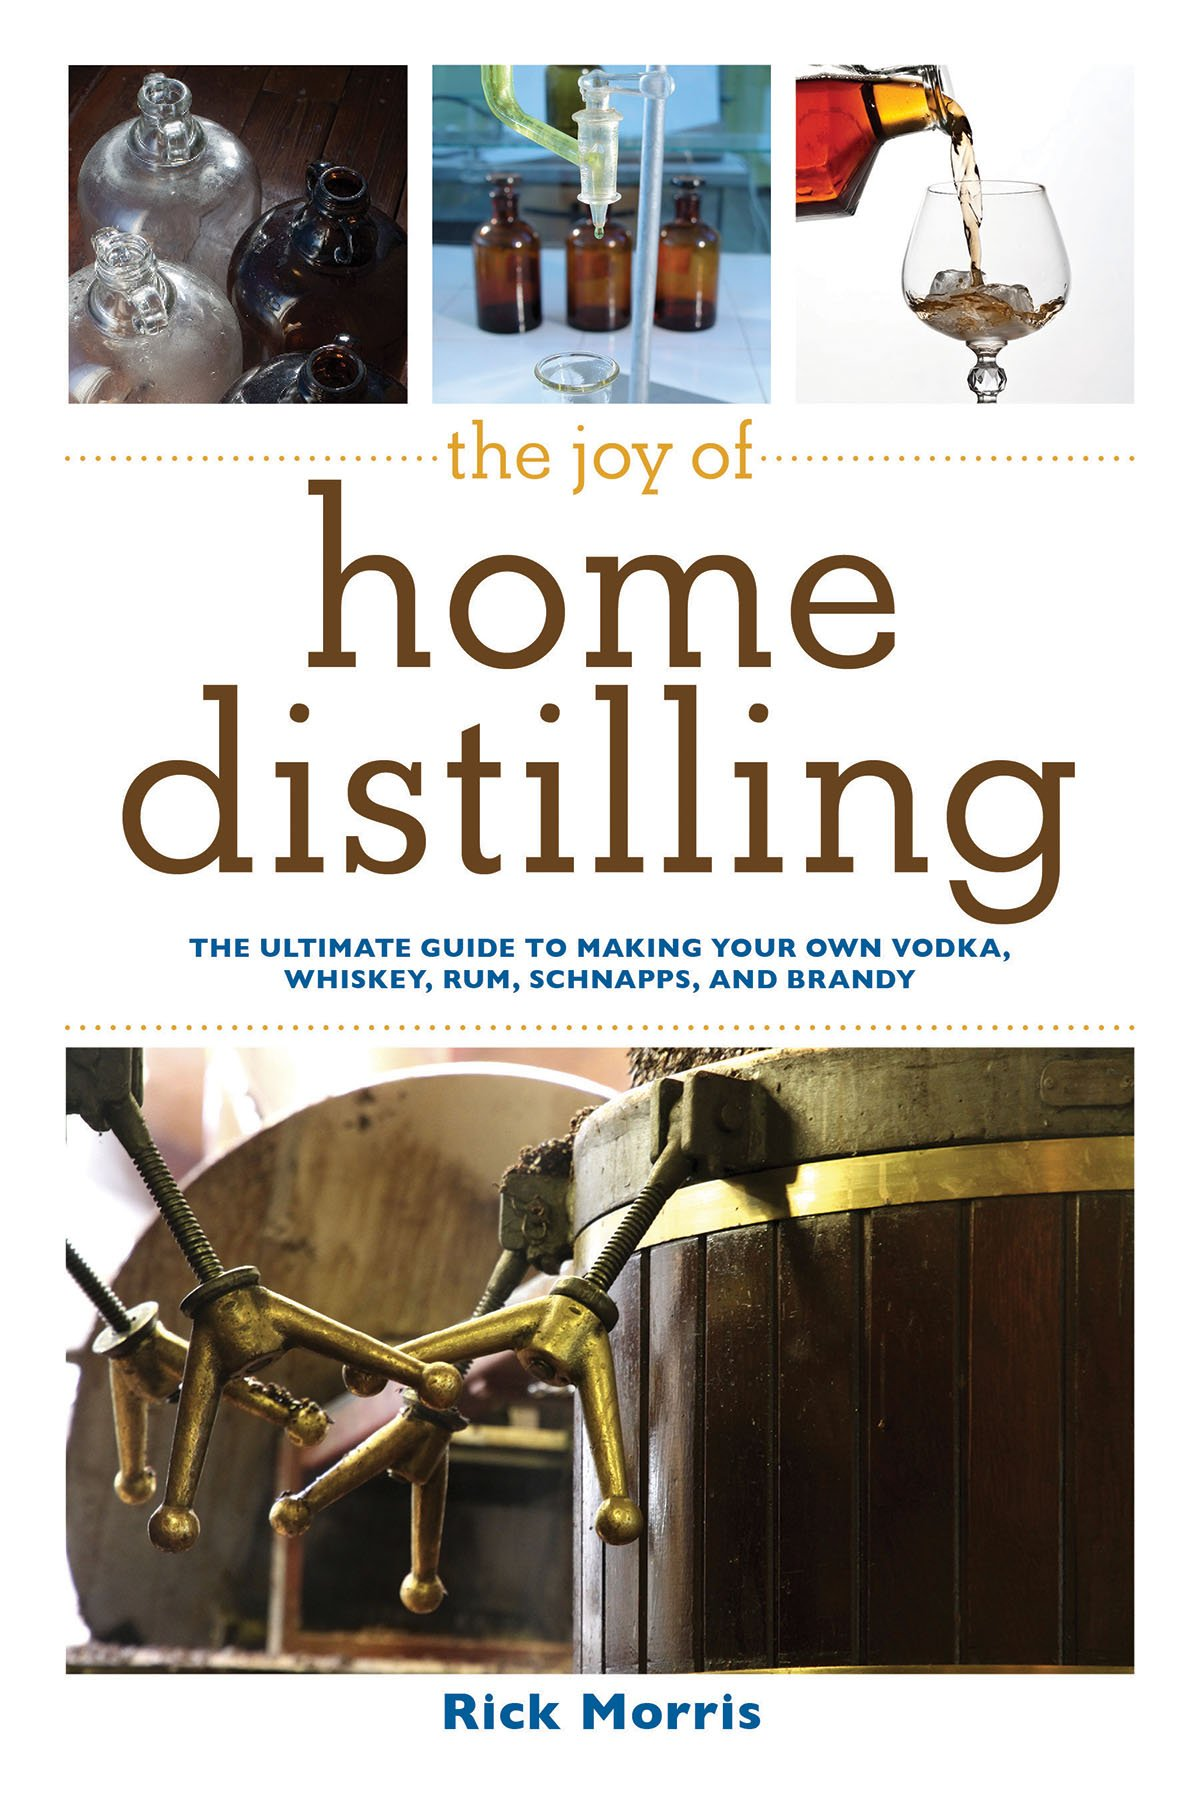 Image OfThe Joy Of Home Distilling: The Ultimate Guide To Making Your Own Vodka, Whiskey, Rum, Brandy, Moonshine, And More